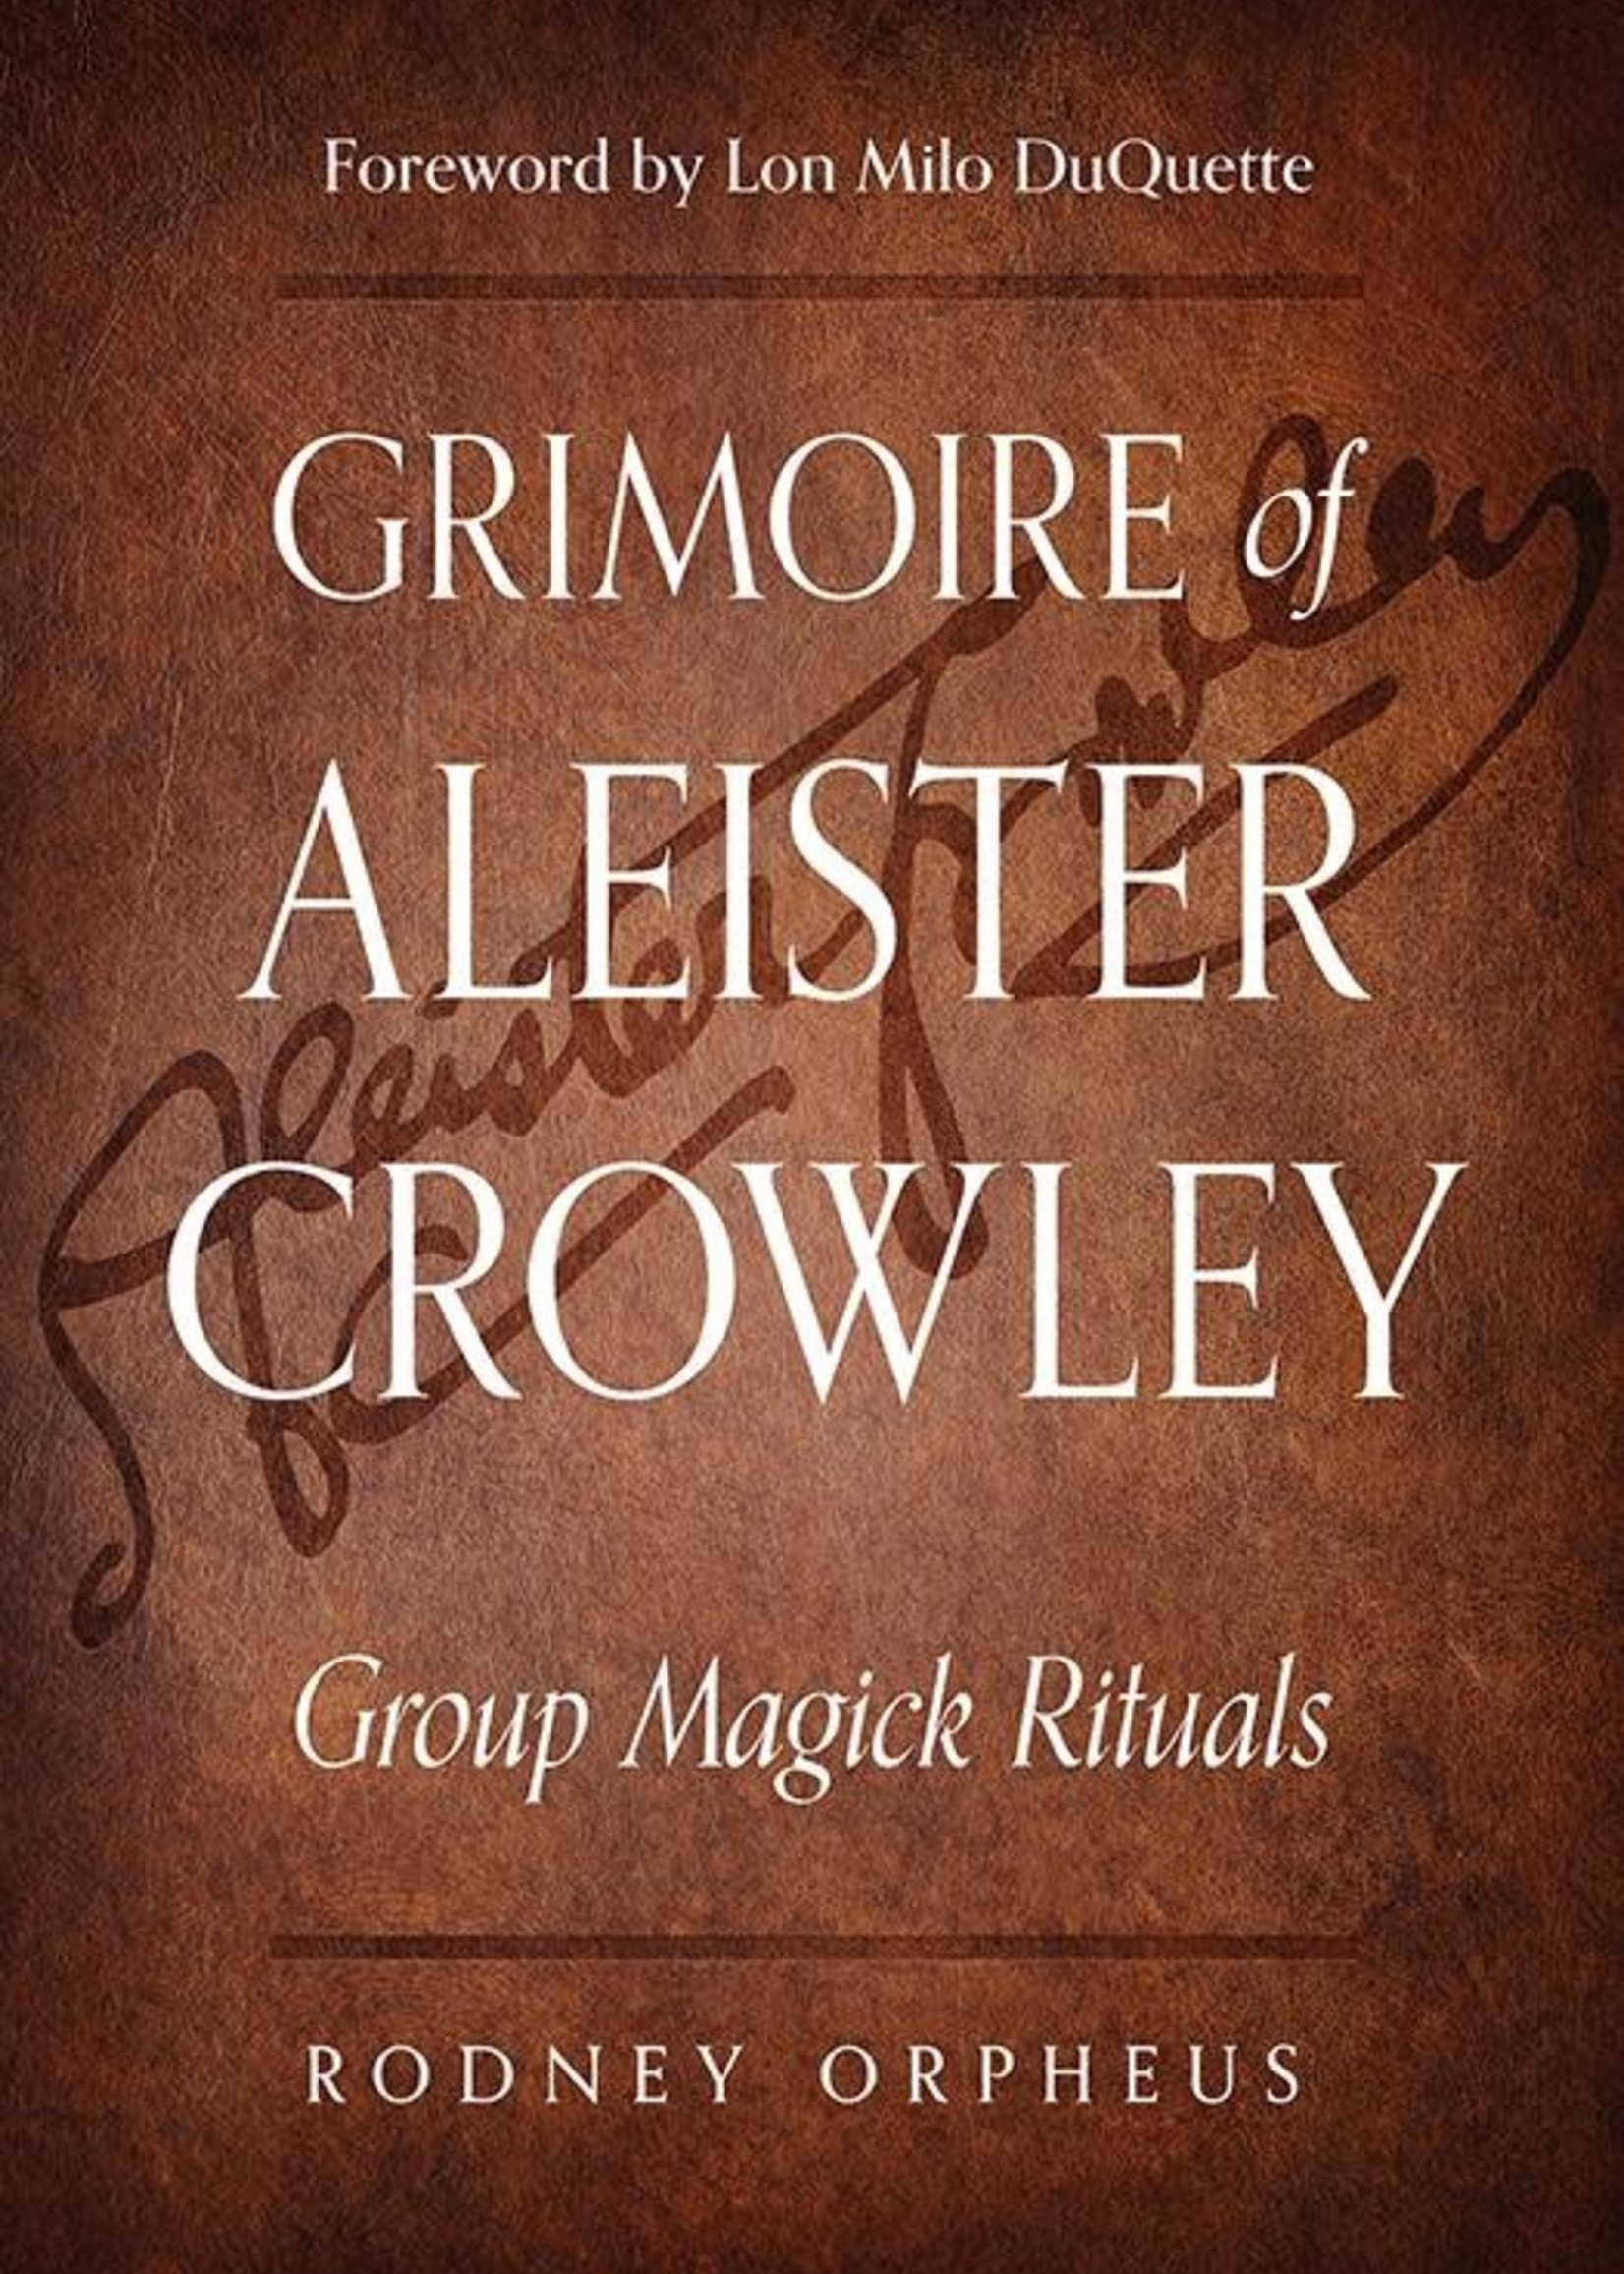 Grimoire of Aleister Crowley (Rodney Orpheus / Aleister Crowley)